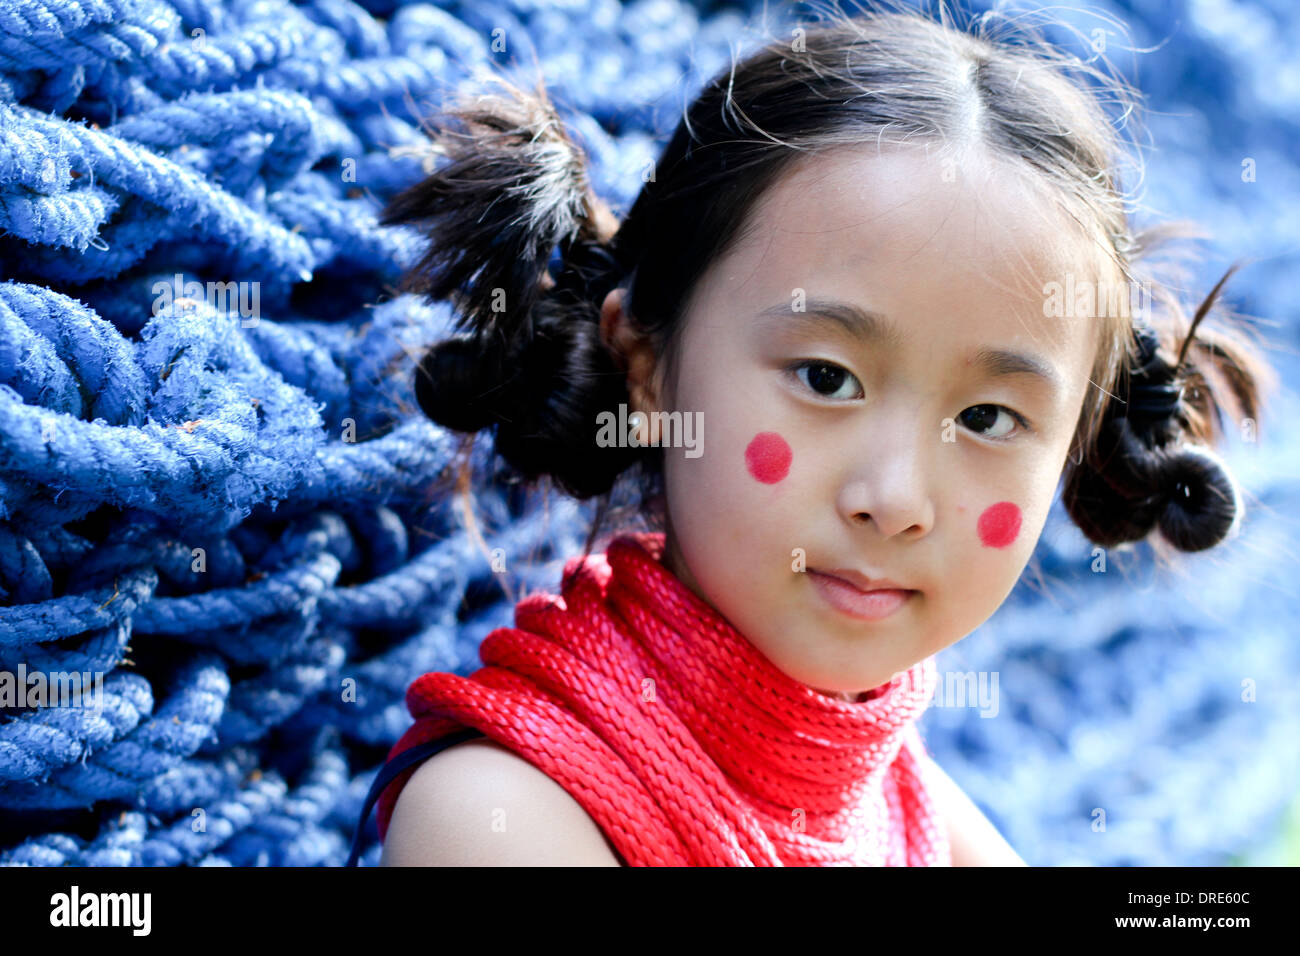 Asian girl en face du mur de corde bleu Photo Stock